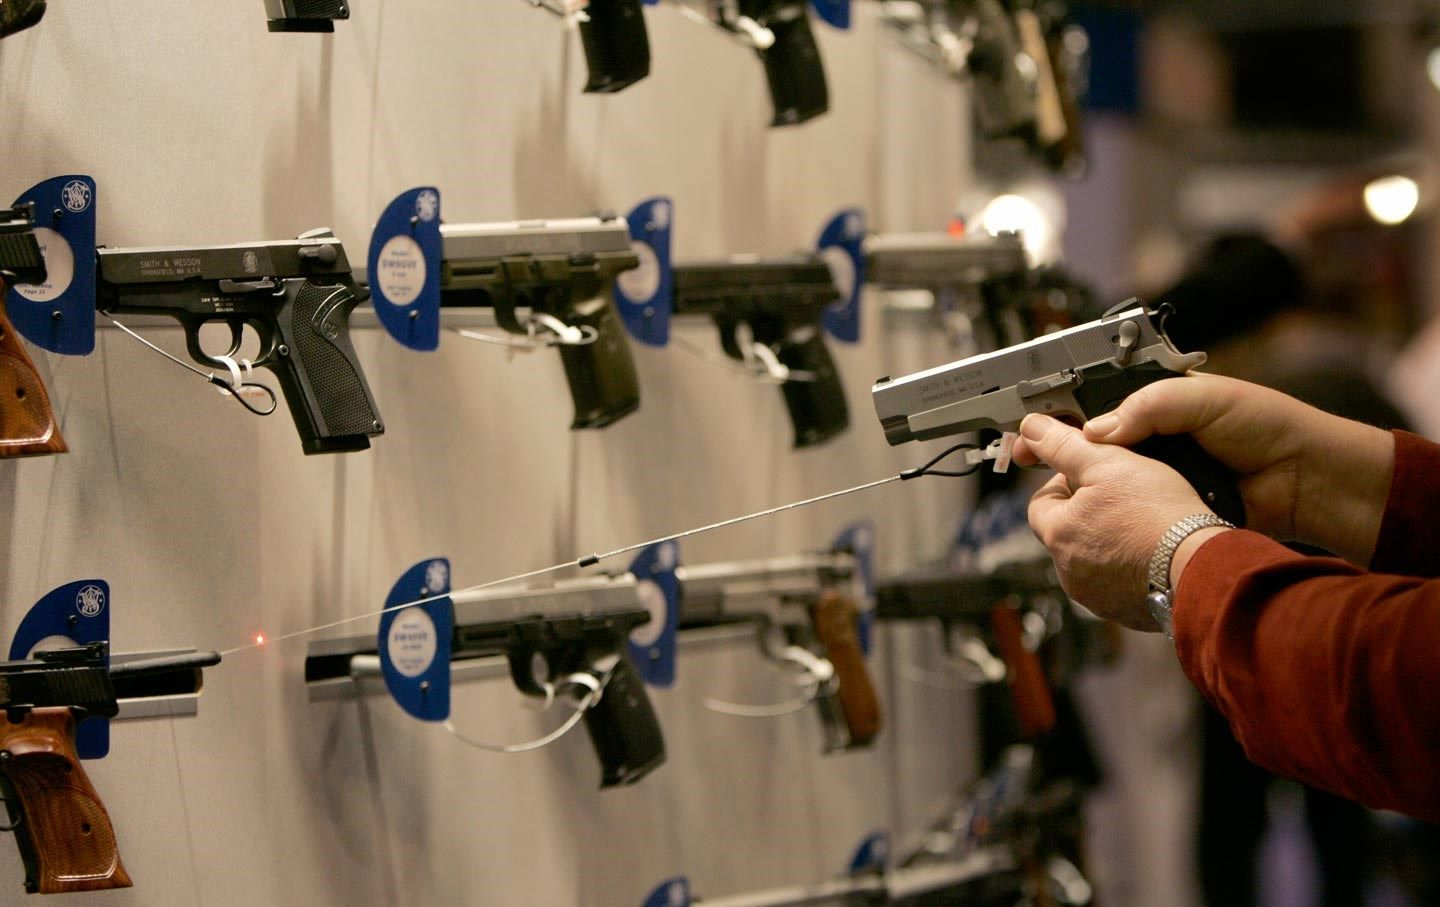 A woman points a handgun with a laser sight on a wall display of other guns during the National Rifle Association convention in St. Louis.